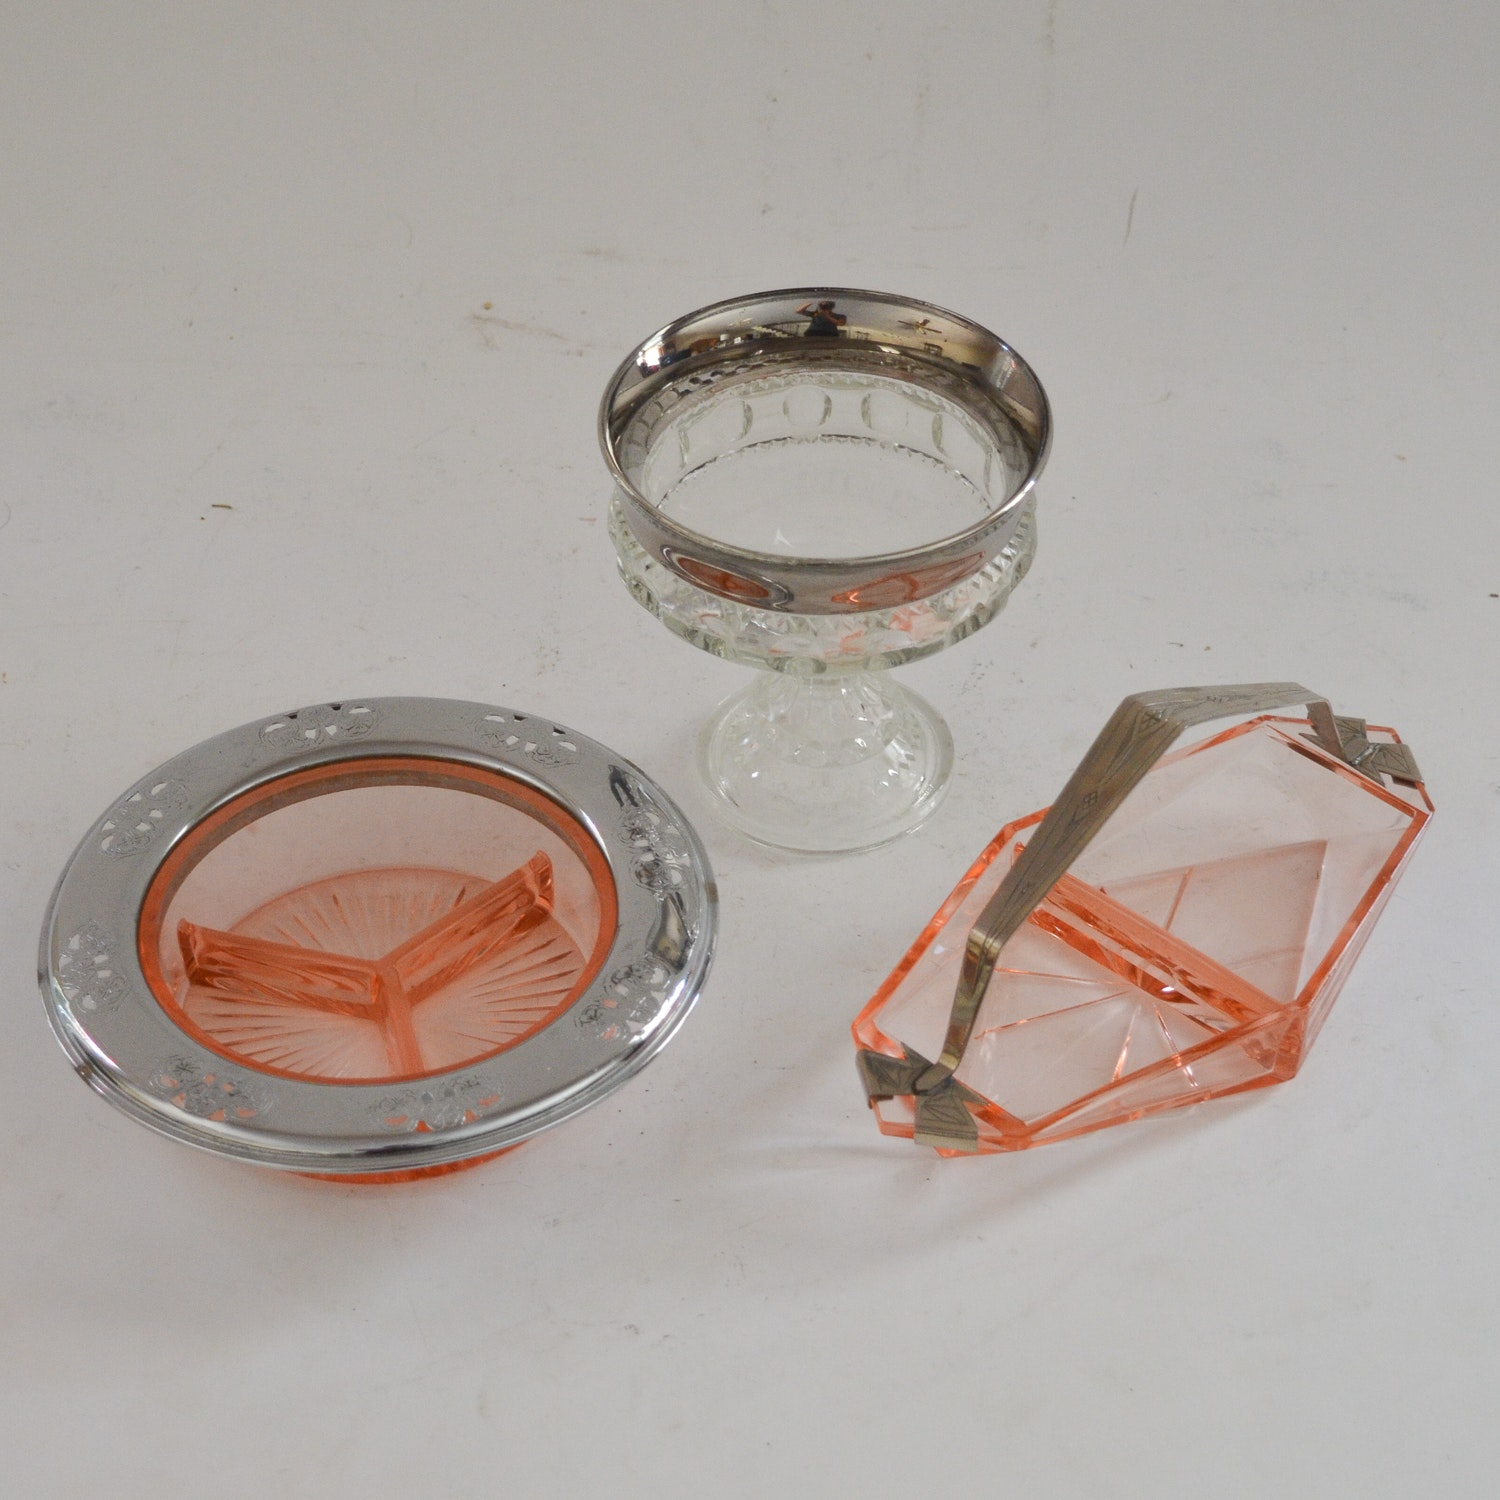 Collection of Metal Accented Glassware